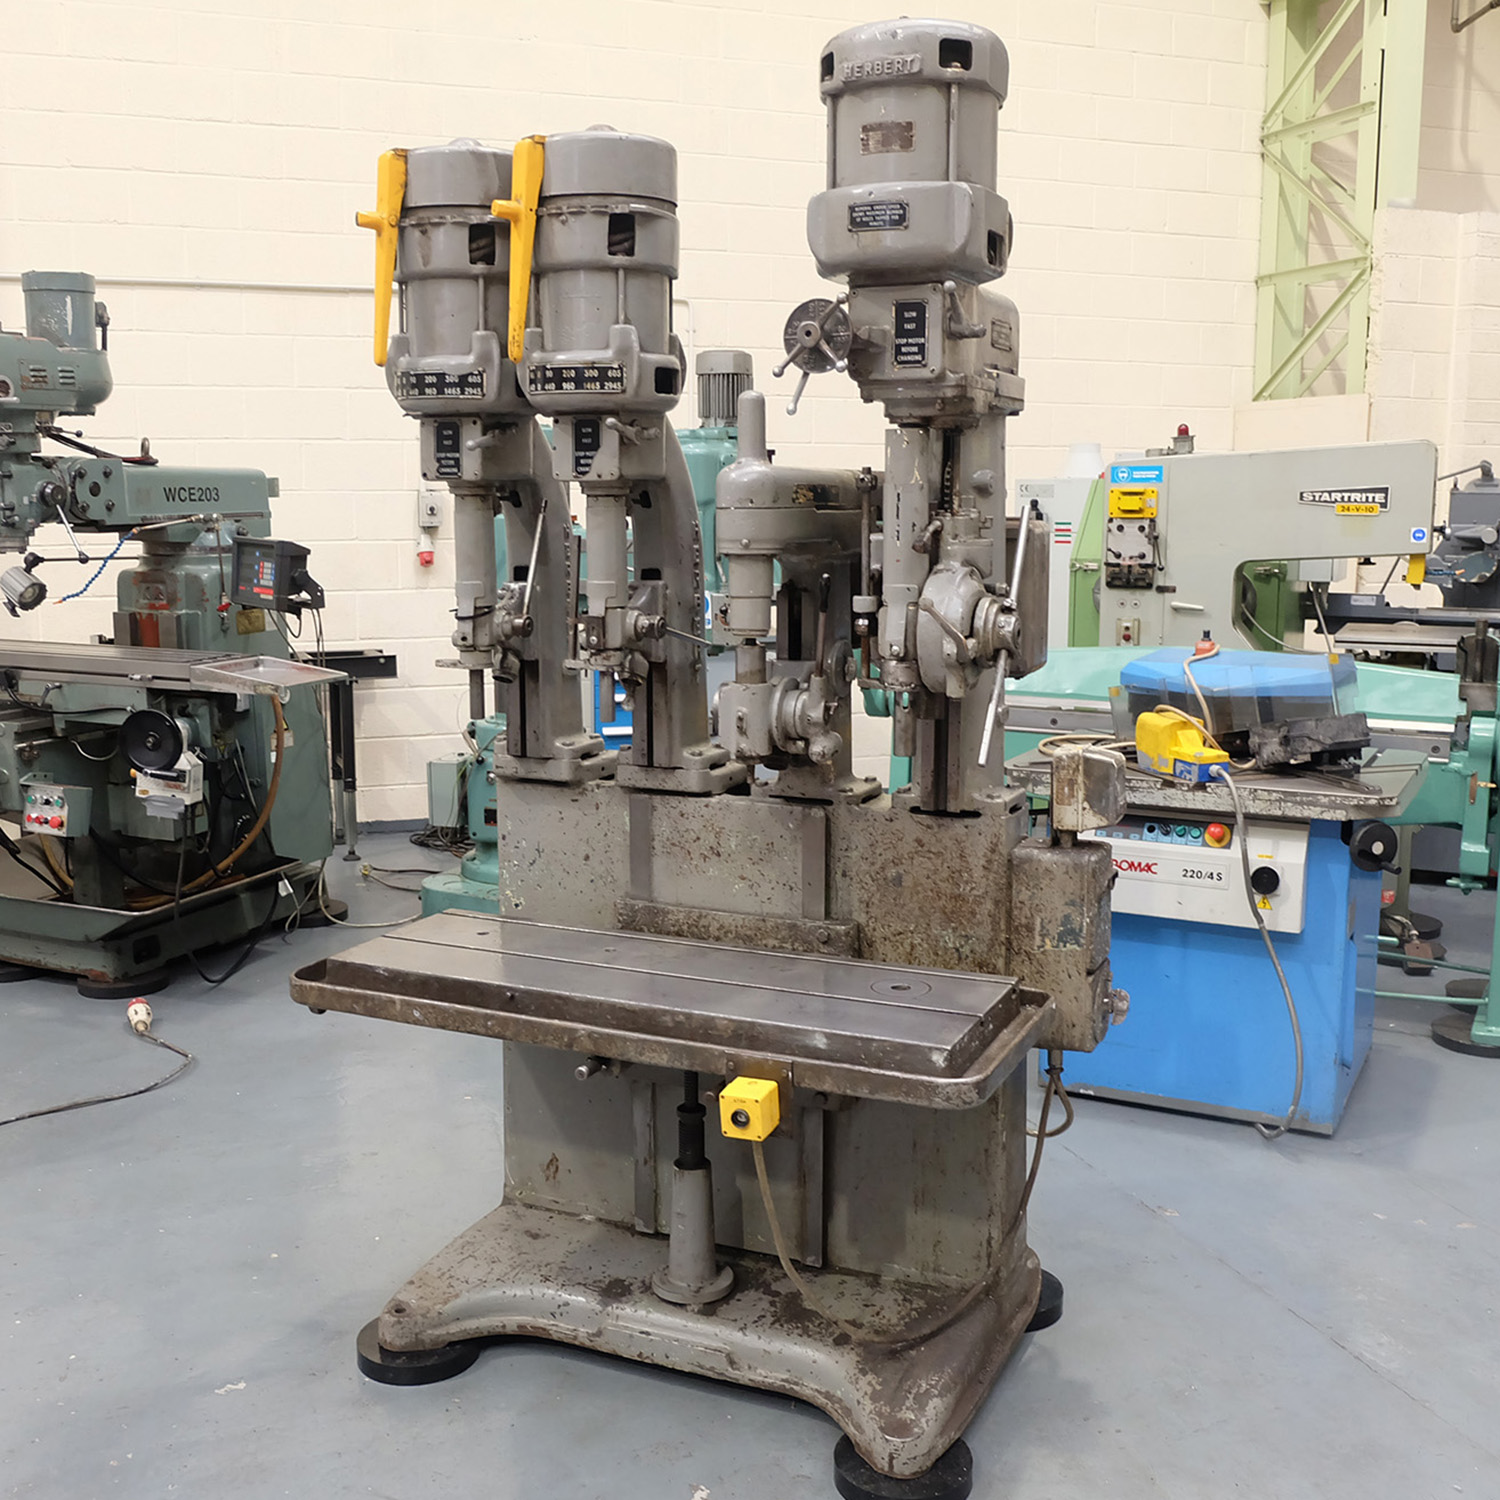 Herbert 4 Spindle In Line Drill. Table Size 46'' x 15 1/2''. - Image 2 of 10